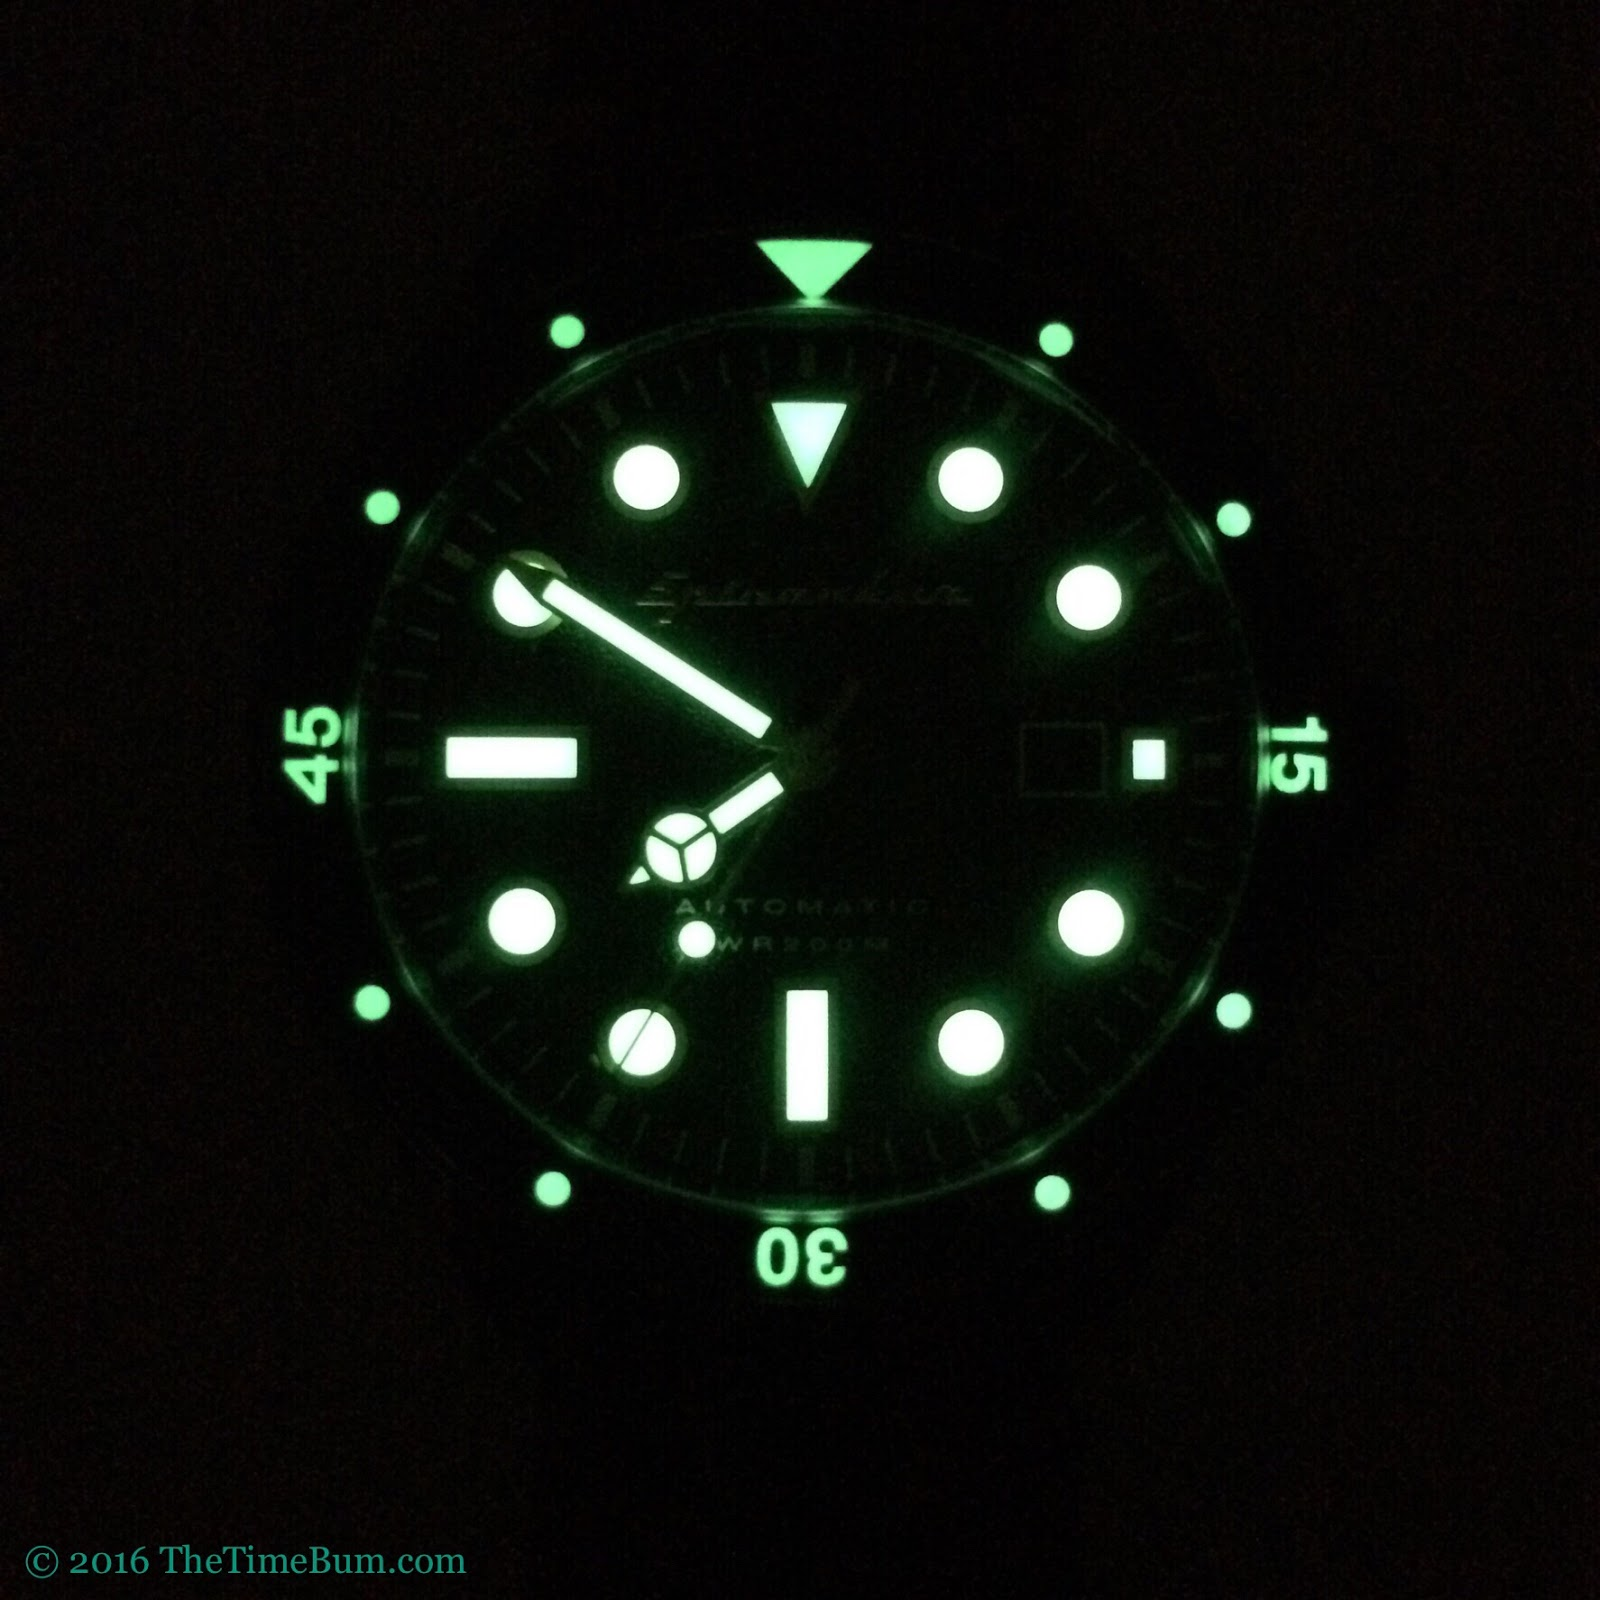 Spinnaker Cahill SP-5033-02 lume